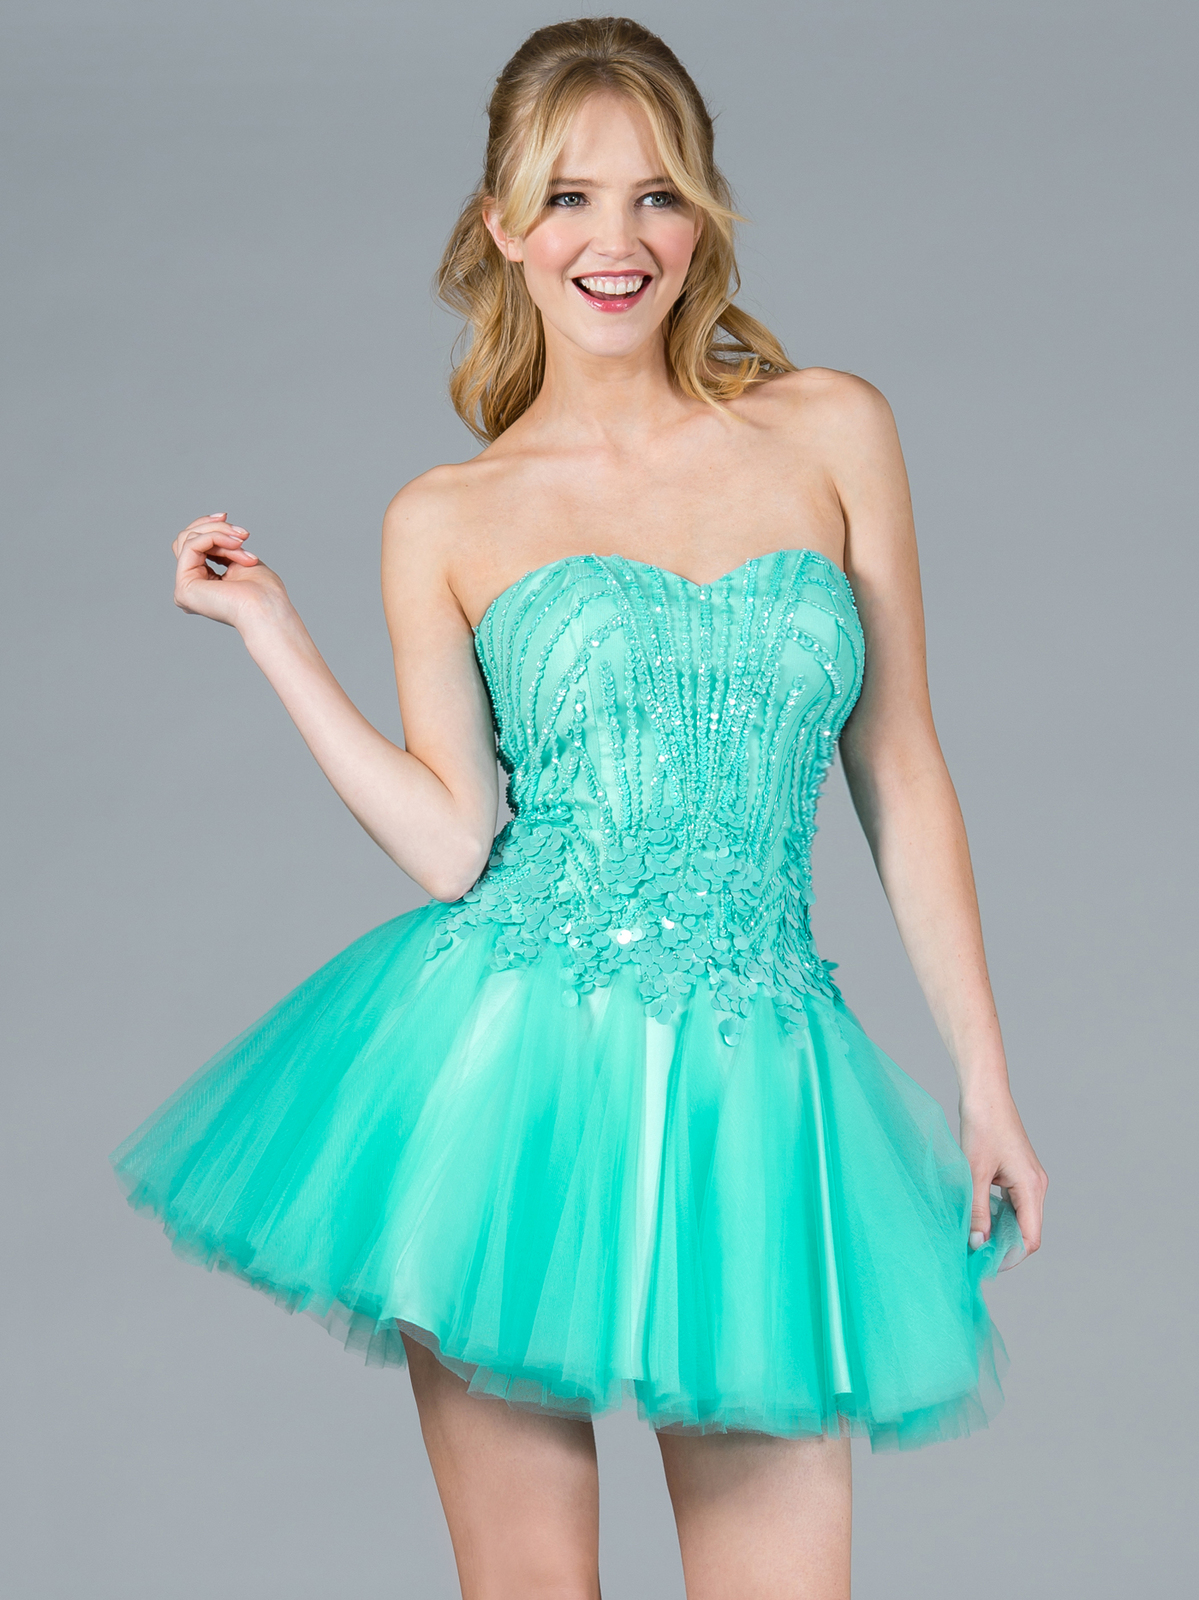 Mint Sequin and Mesh Short Prom Dress | Sung Boutique L.A.